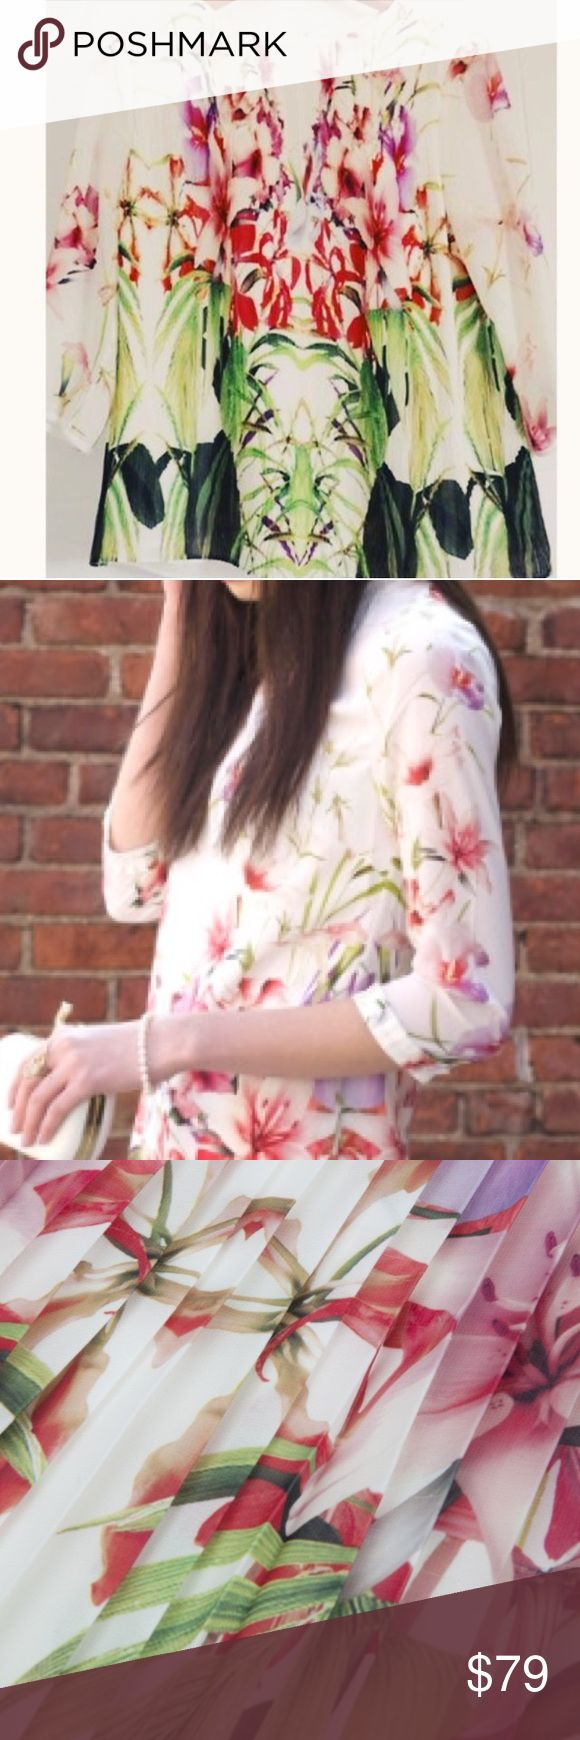 Ted Baker Zumbel Mirrored Tropics Pleated Blouse AUTHENTIC Ted Baker Zumbel Mirrored Tropics Pleated Blouse  Cut to a flattering fit and pleated finish, this top with a rounded neckline, three-quarter length sleeves and a vibrant mirrored tropics print is sure to get you noticed. Team yours with skinny-fit jeans and flats for contemporary weekend wear that has plenty of statement appeal.  Condition: New, unworn, without tags. This was purchased with a mark through the label only to prevent…